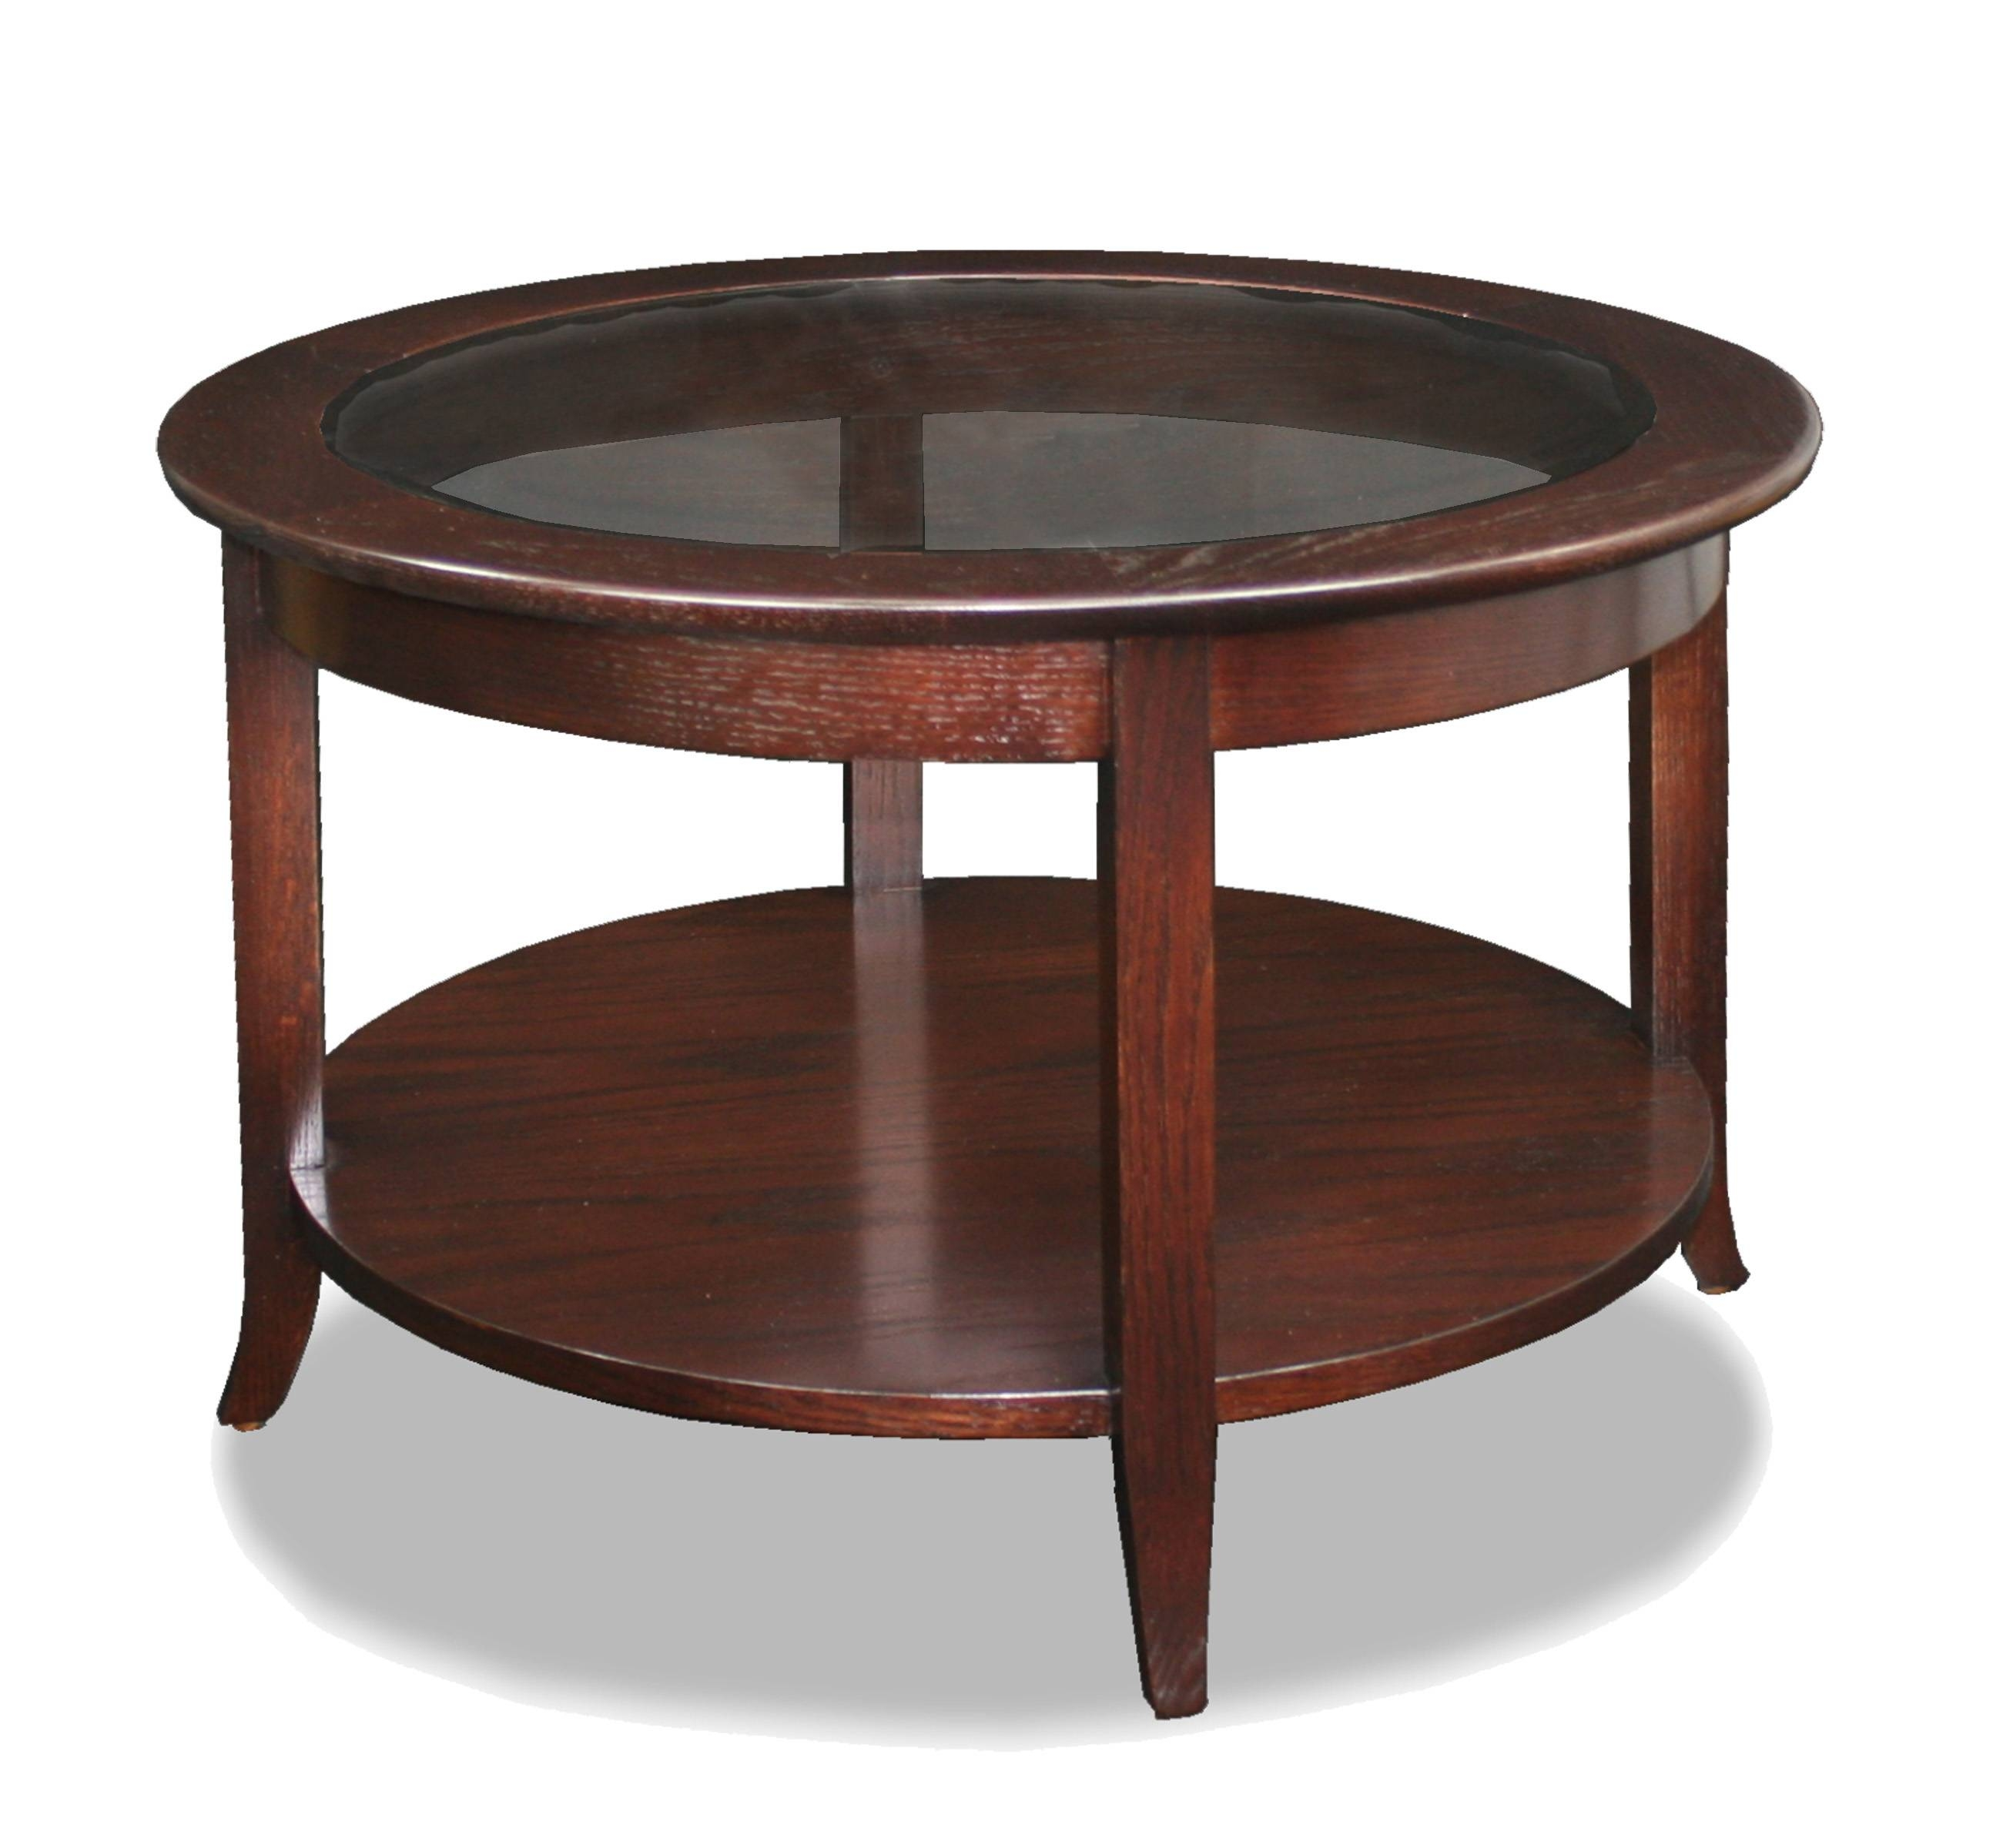 Wood And Glass Coffee Table. (View 8 of 15)